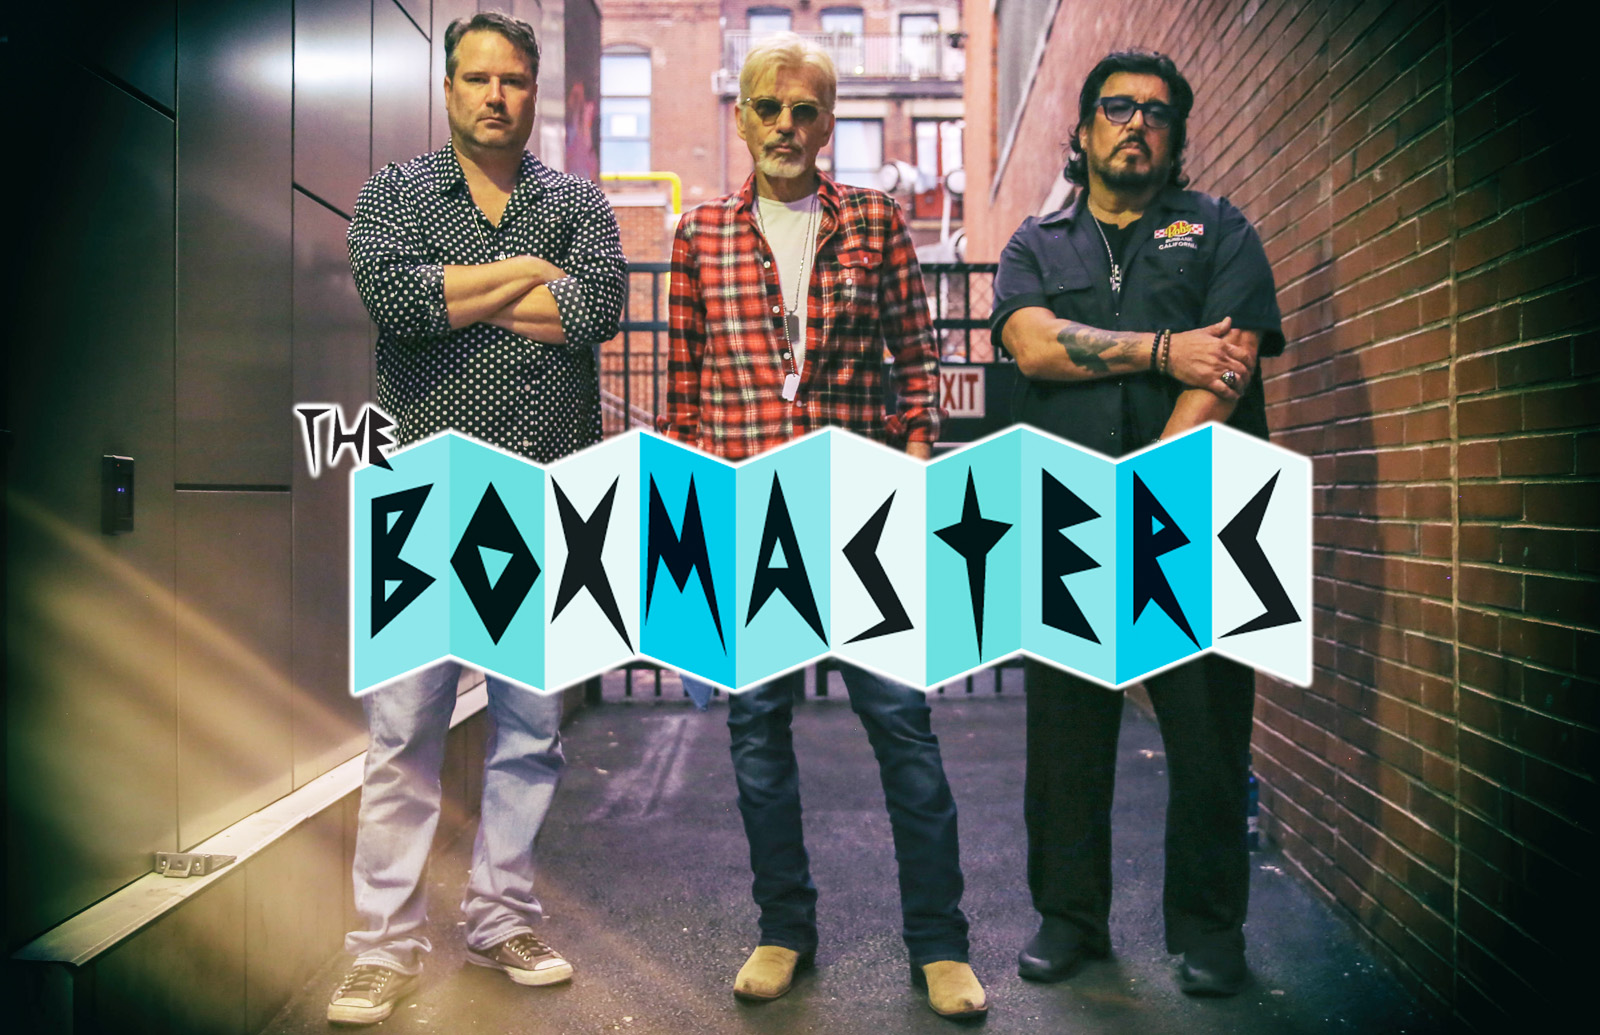 From Hollywood to Holly Ave! Billy Bob Thornton and The Boxmasters make their debut on the Cactus stage Wednesday, July 31 at 7:30 pm!